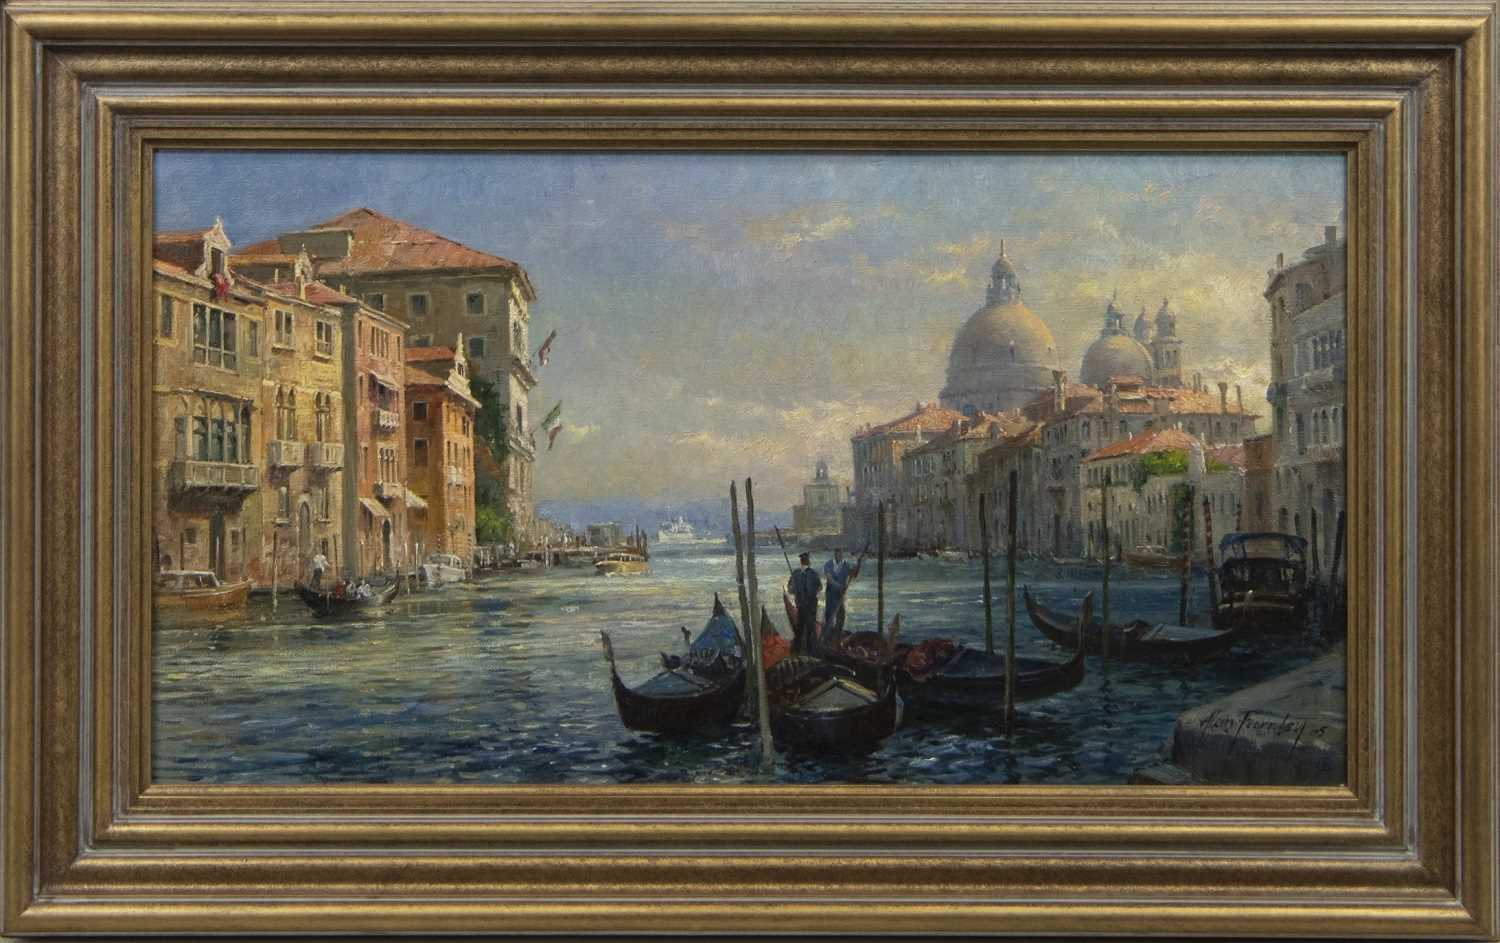 Lot 555 - VENICE WITH MARIA DELLA SALUTE IN THE DISTANCE, AN OIL ALAN FEARNLEY